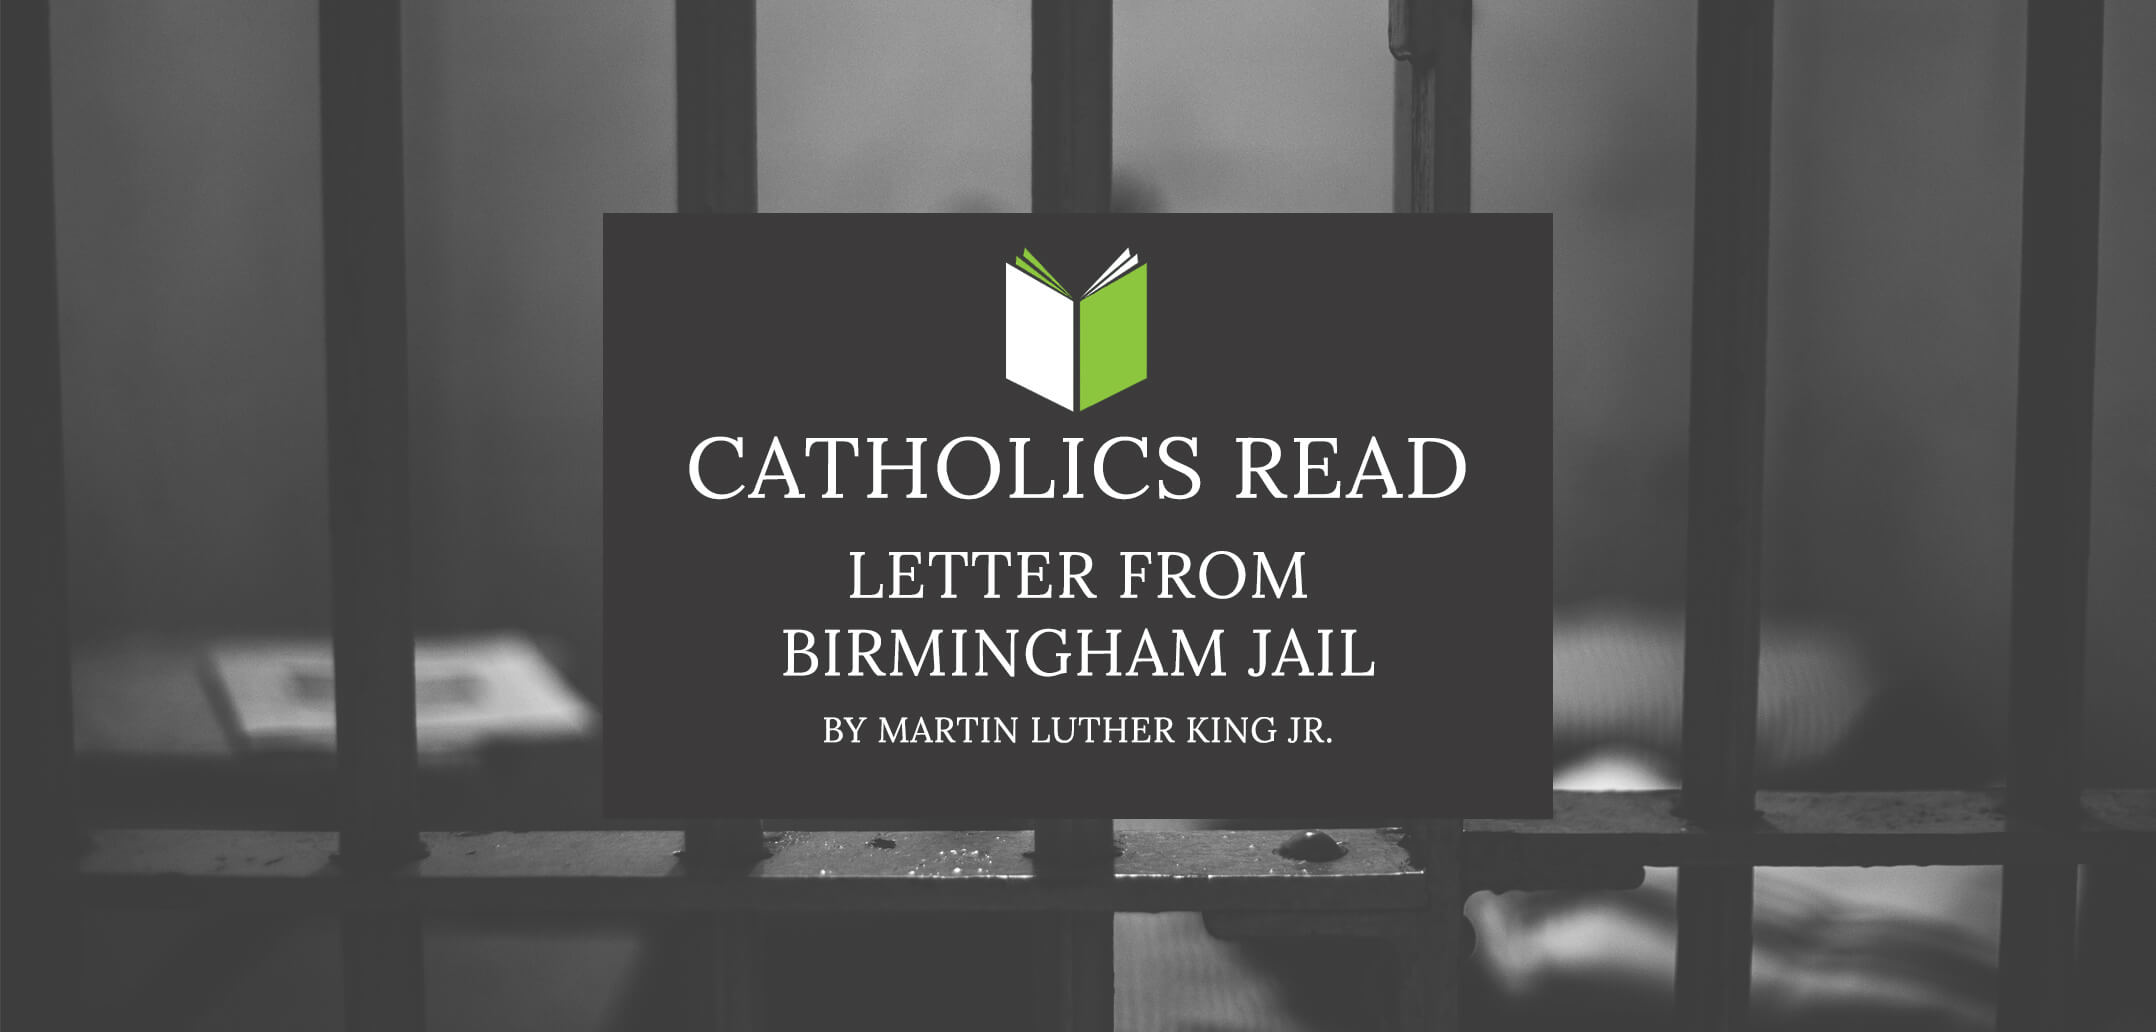 Catholics Read Letter From Birmingham Jail | Cradio